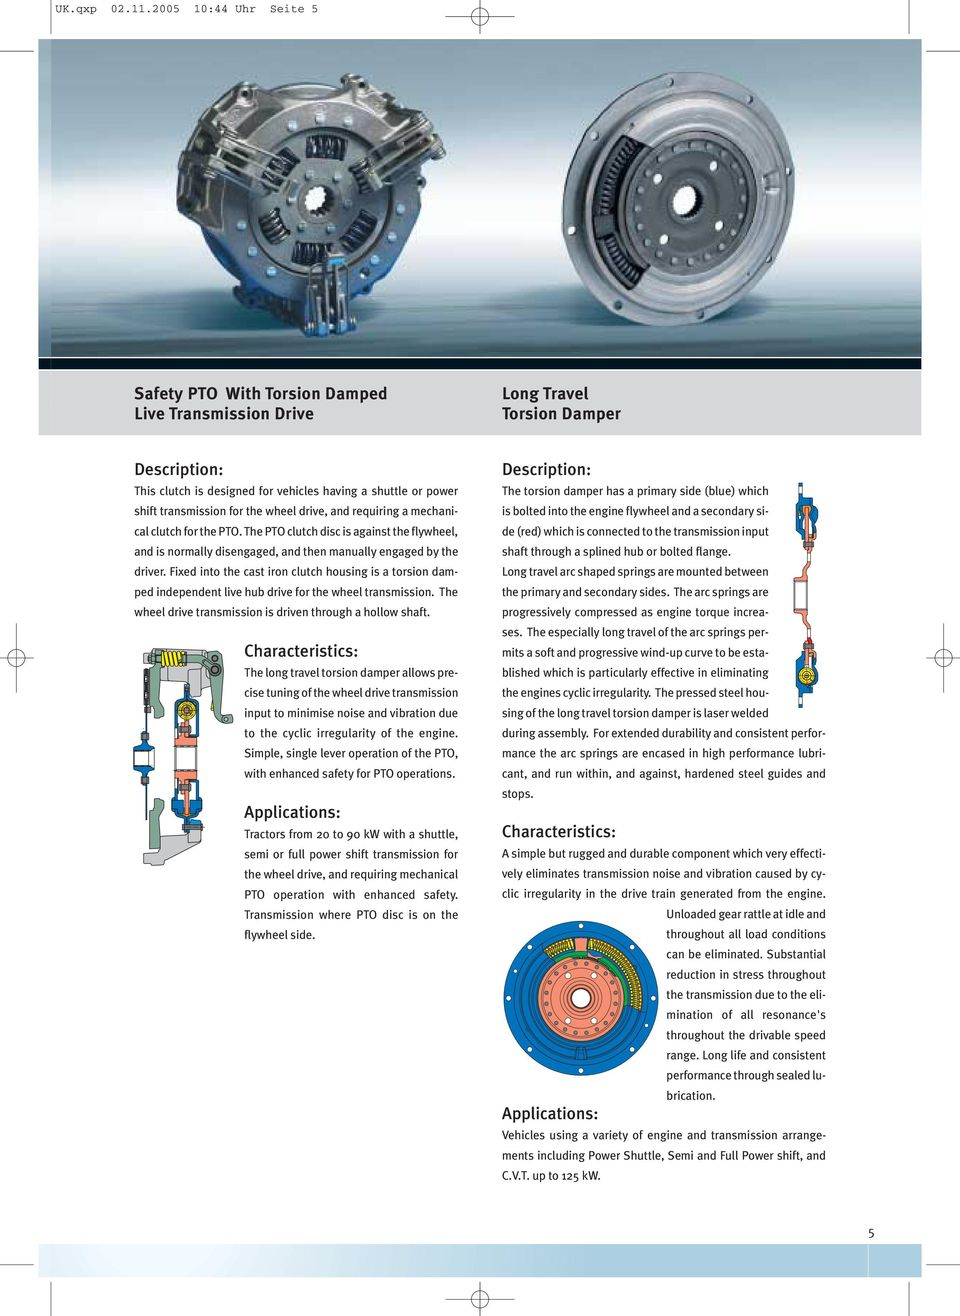 wheel drive, and requiring a mechanical clutch for the PTO. The PTO clutch disc is against the flywheel, and is normally disengaged, and then manually engaged by the driver.